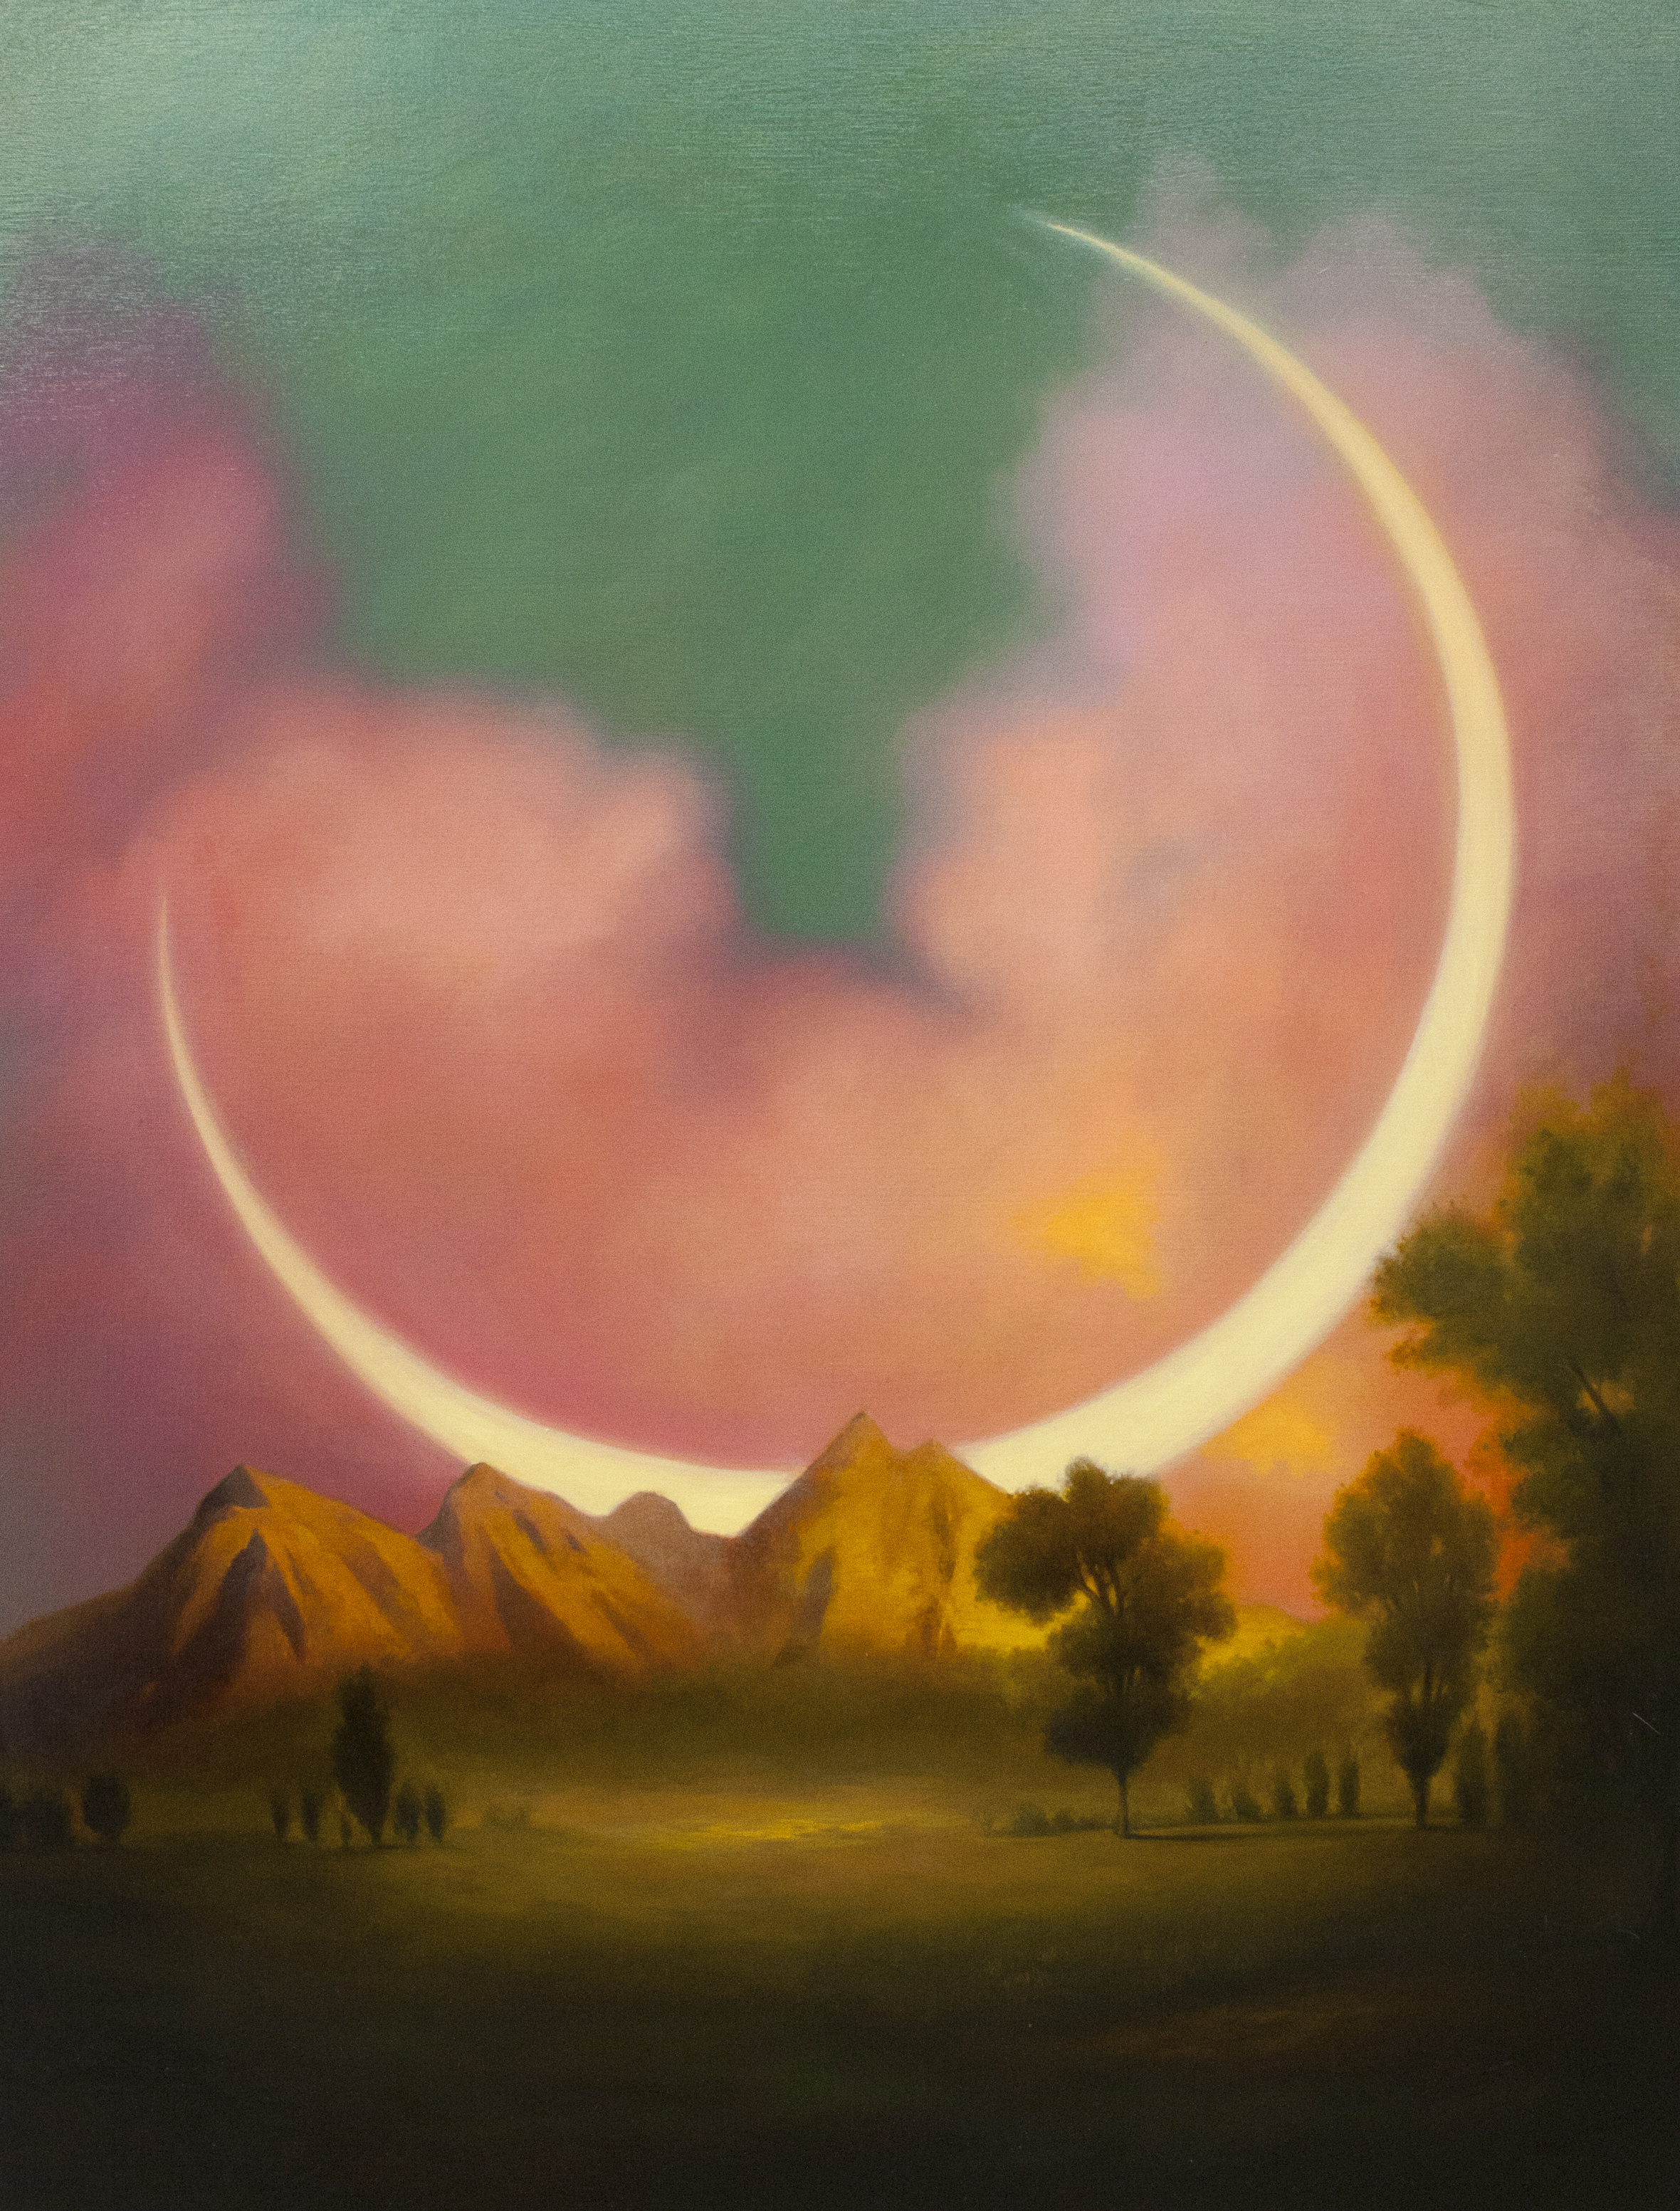 Work from Megan's most recent show, Artificial Kingdoms. Moonrise, 30x40 In, Oil on canvas.